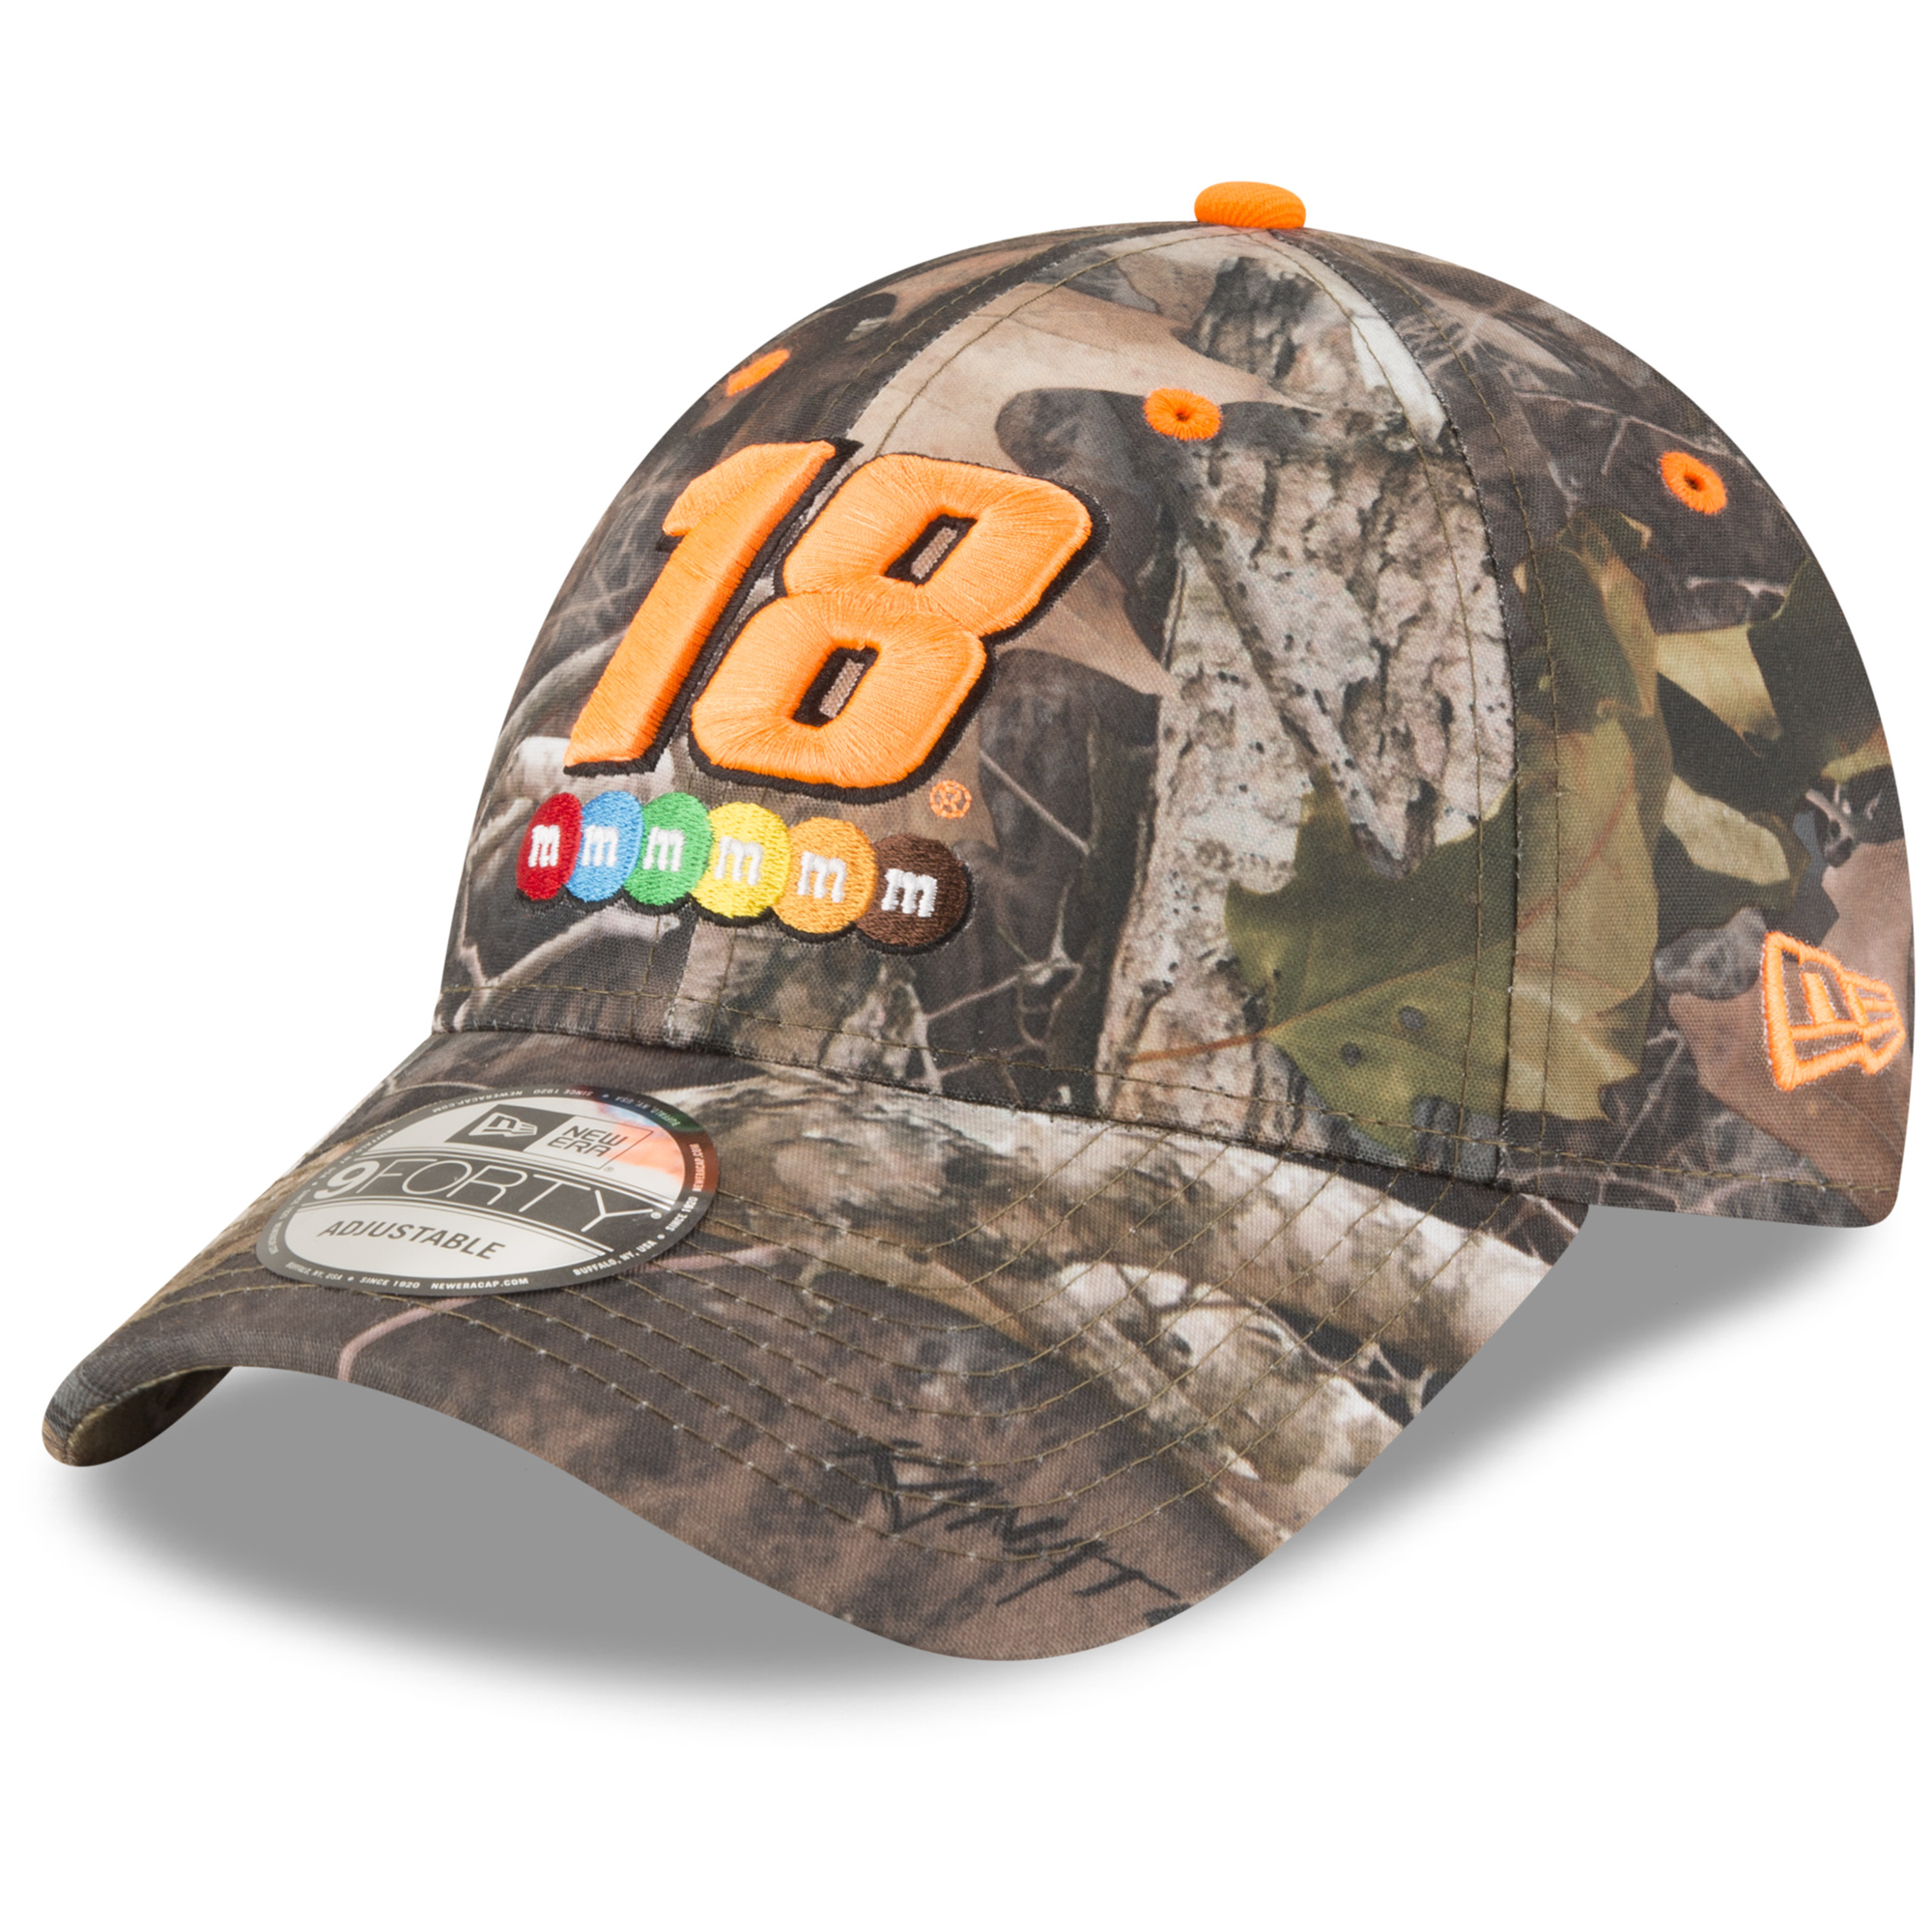 Kyle Busch New Era All Over Camo 9FORTY Adjustable Hat - Camo/Orange - OSFA